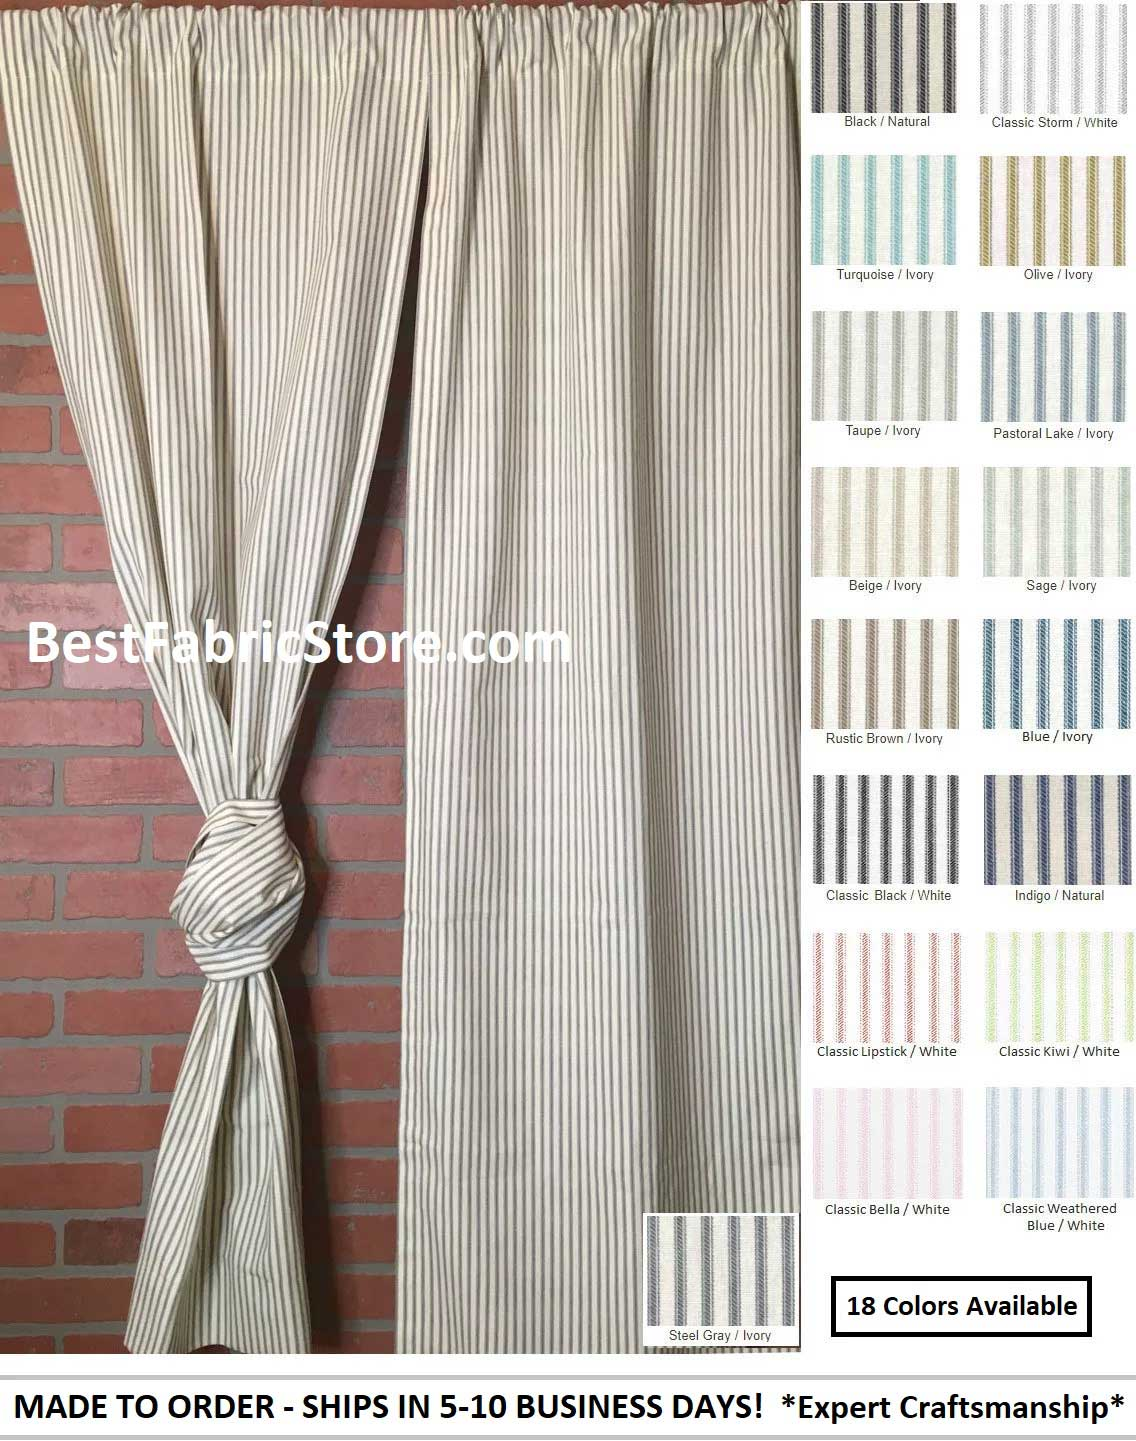 Farmhouse Rod Pocket Ticking Stripe Curtains Or Valance Made To Order Best Fabric Store